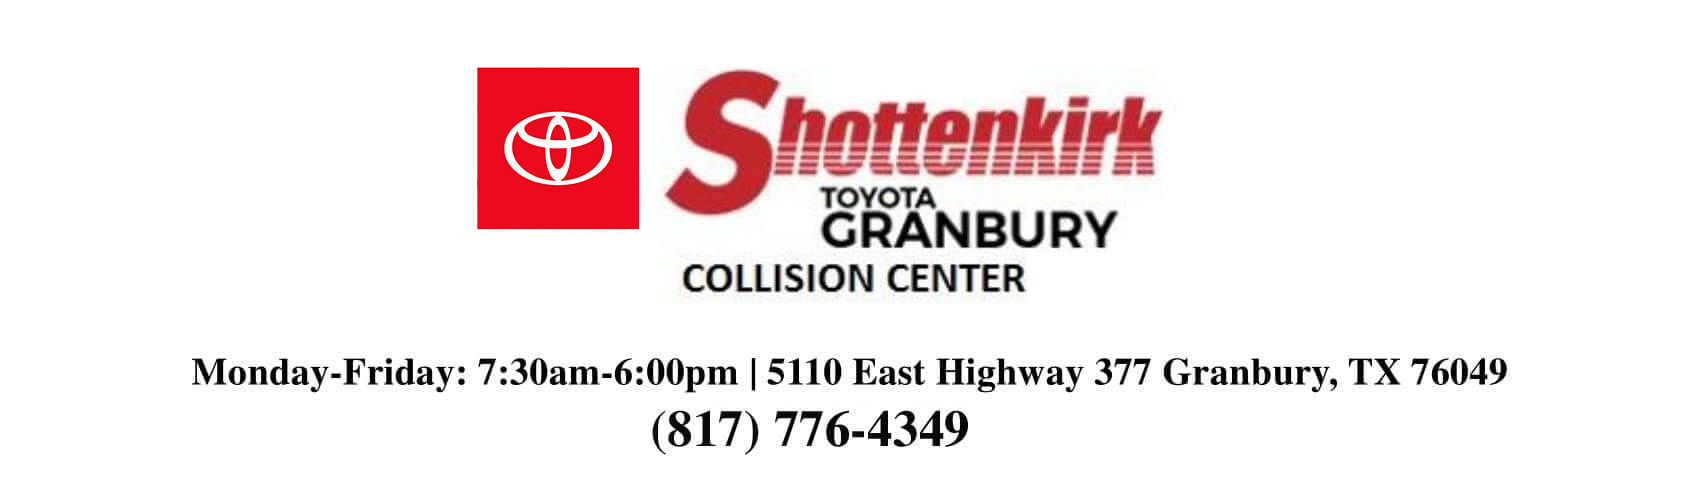 Come See Us at Shottenkirk Collision Center